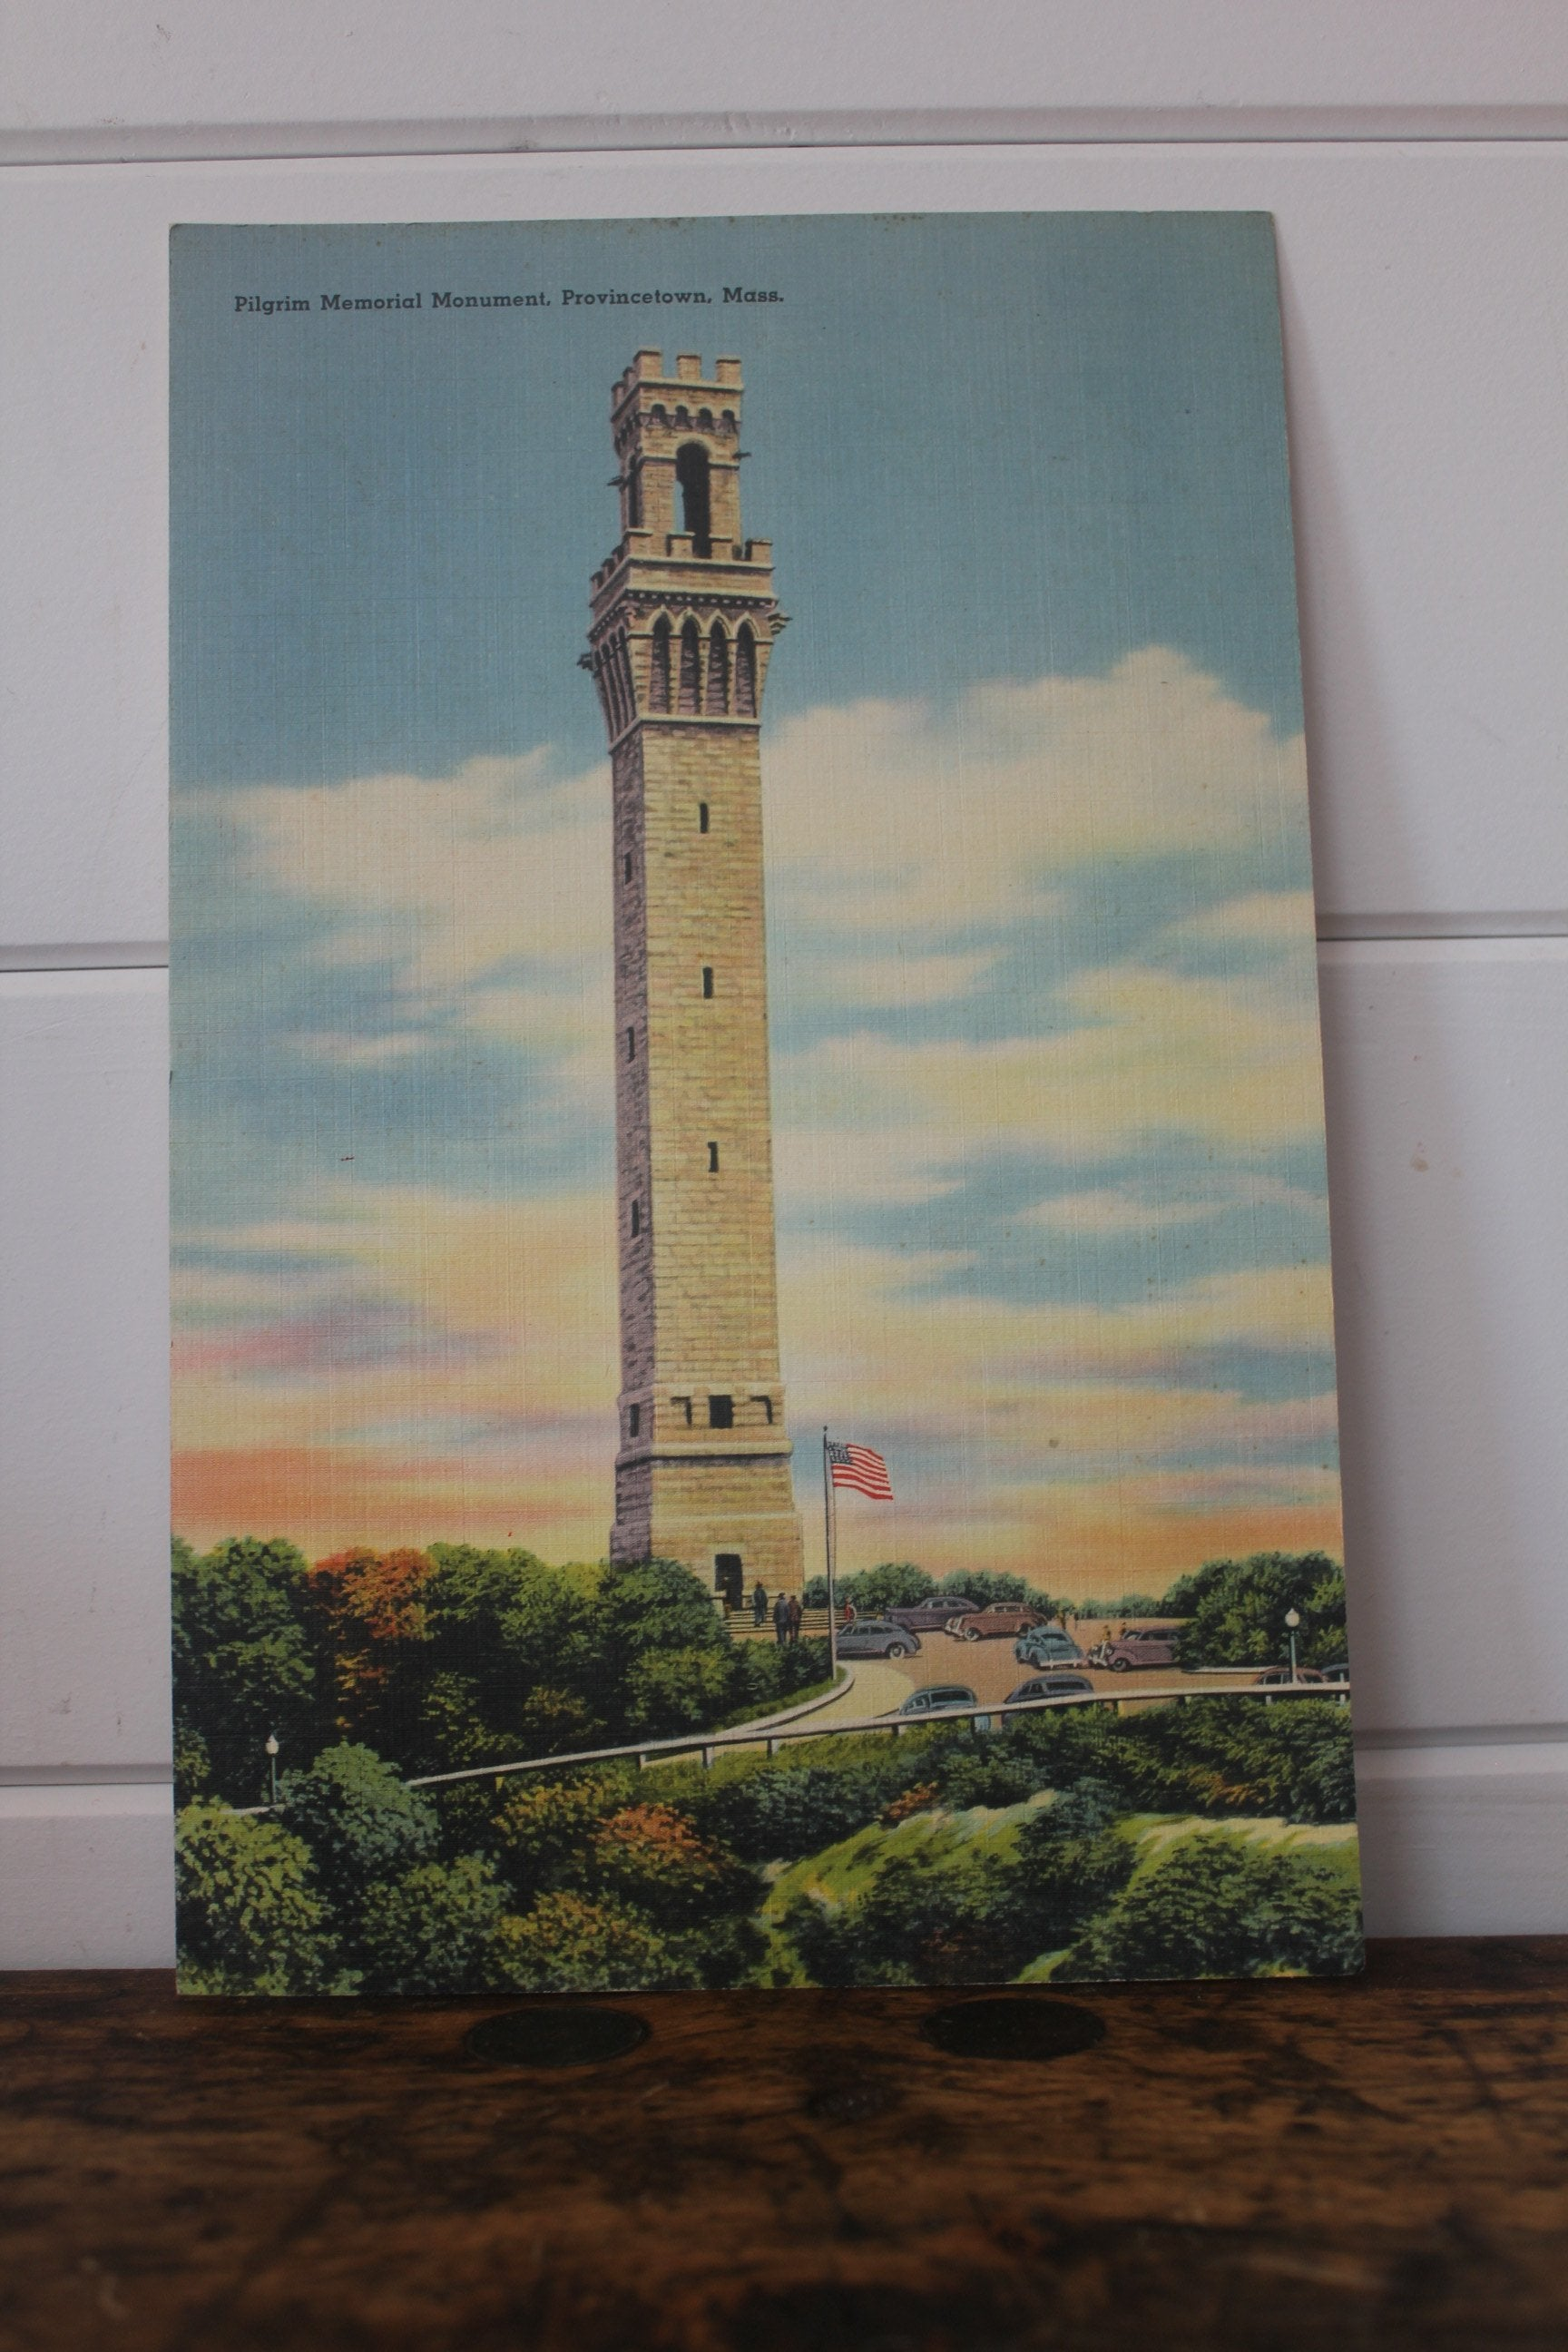 Vintage Pilgrim Monument Oversized Postcard - Diamonds & Rust